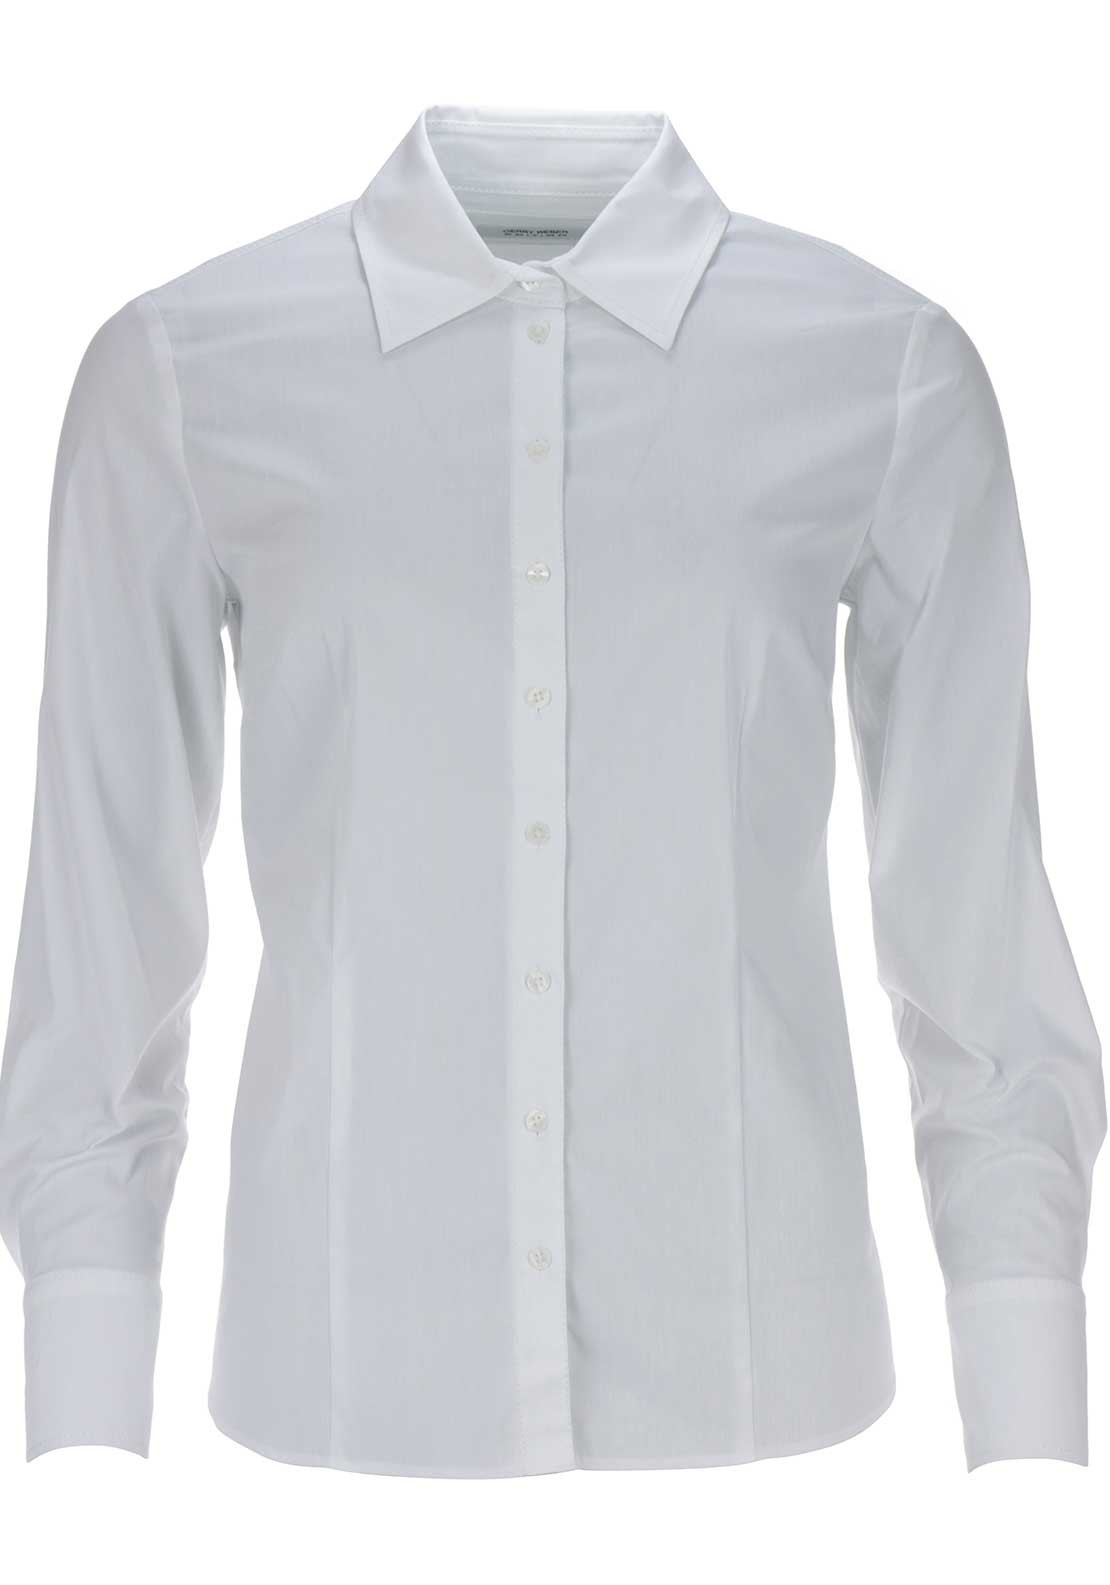 Gerry Weber Long Sleeve White Shirt